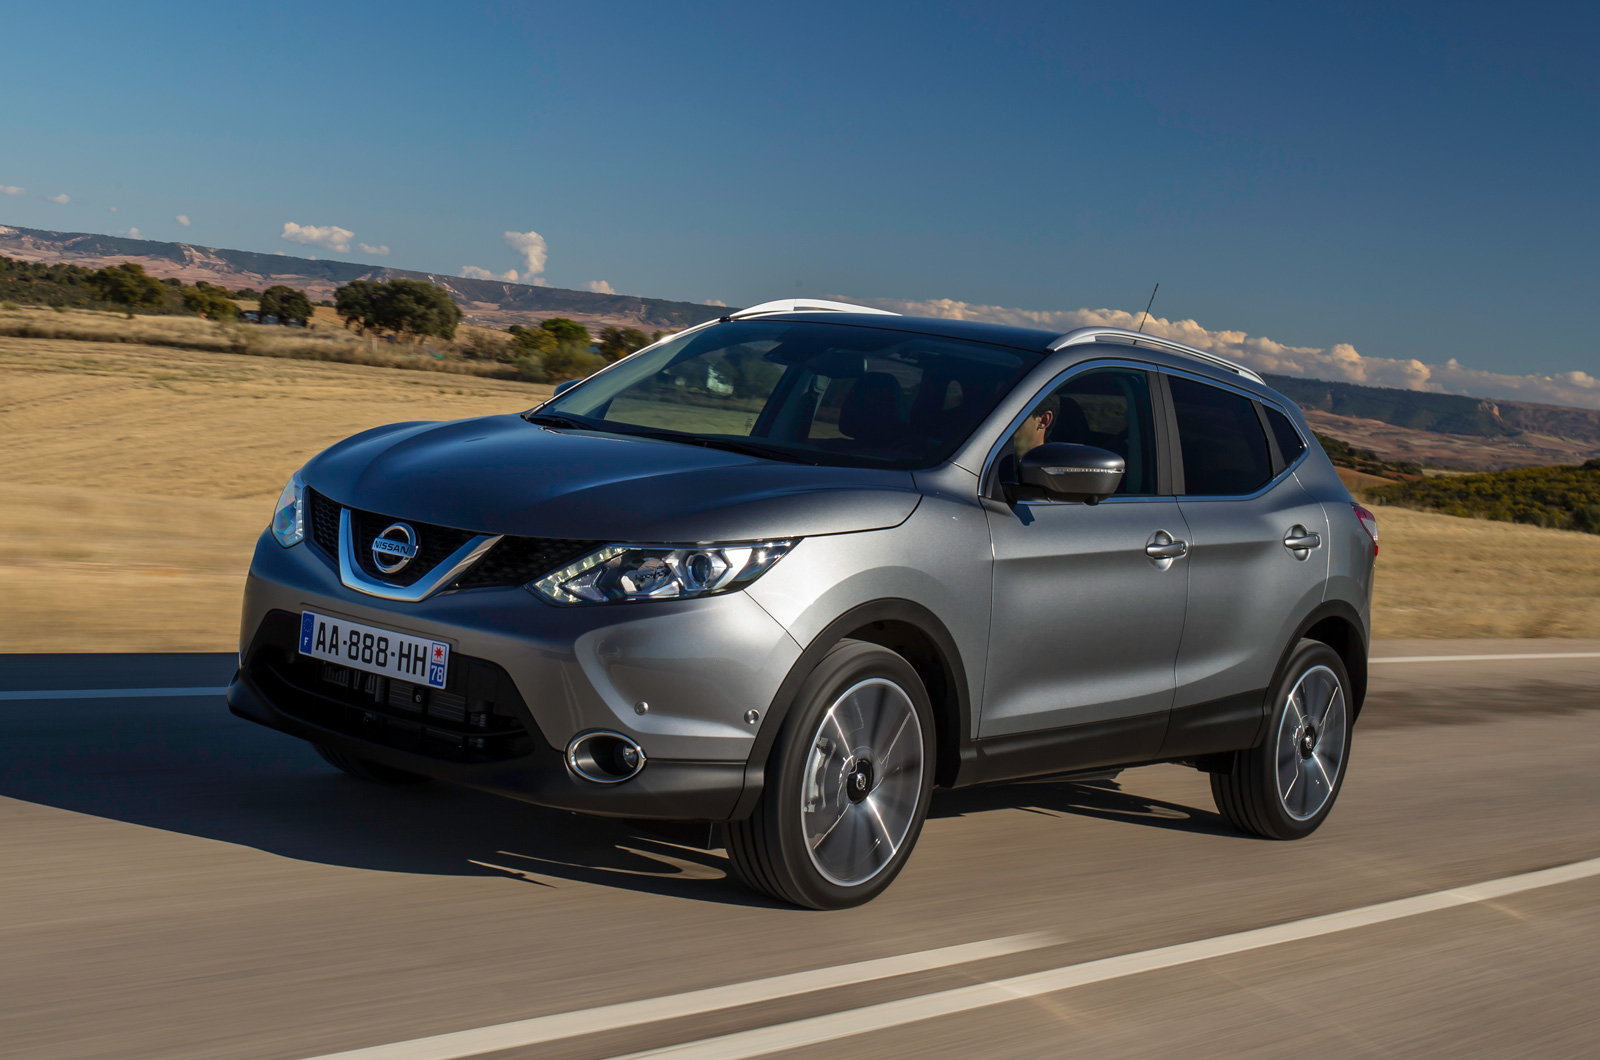 2014 nissan qashqai 1 2 dig t first drive review autocar. Black Bedroom Furniture Sets. Home Design Ideas